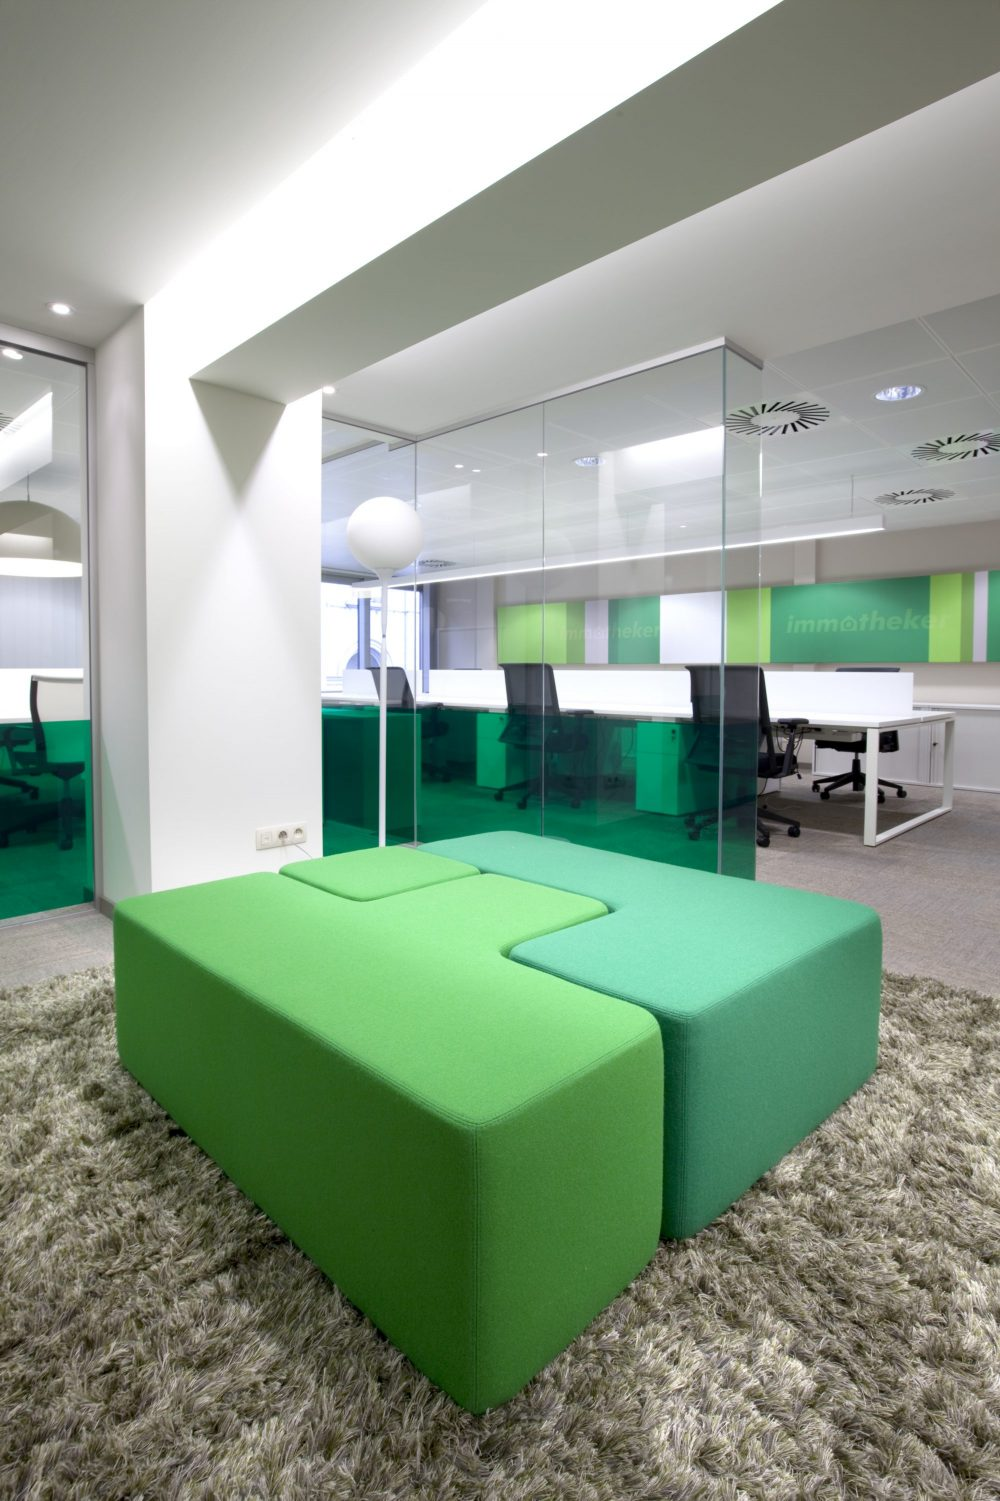 Green carpet, green sitting elements in fabric, workspace, logo Immotheker on wall